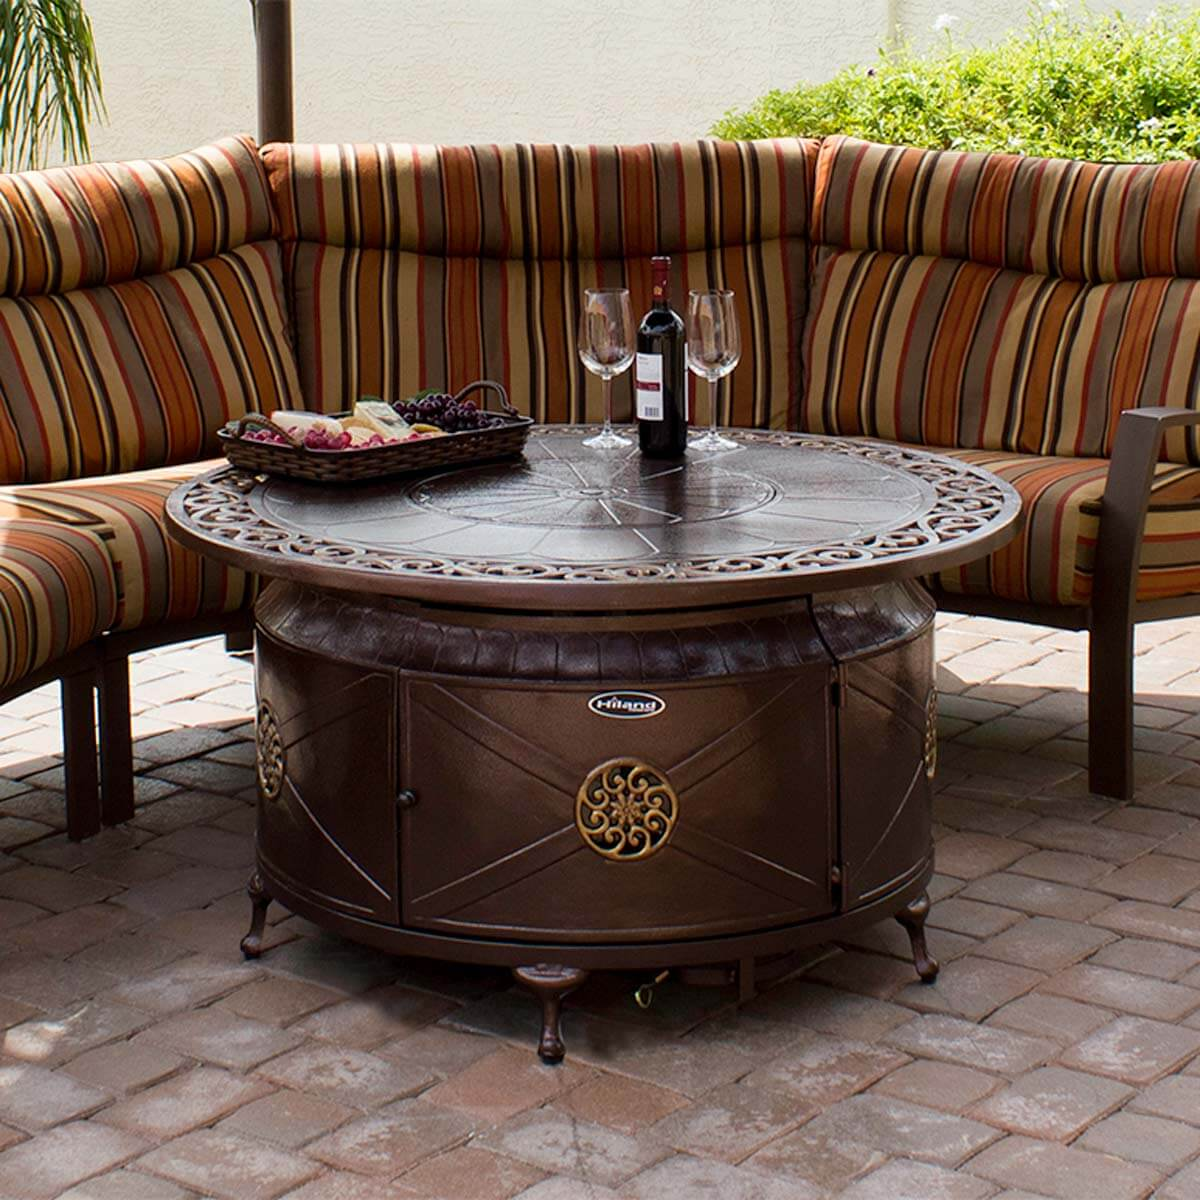 sensational fire pits that will let you soak sunsets the patio outdoor side table calgary heaters small round silver cocktail rustic living room tables clip light essentials